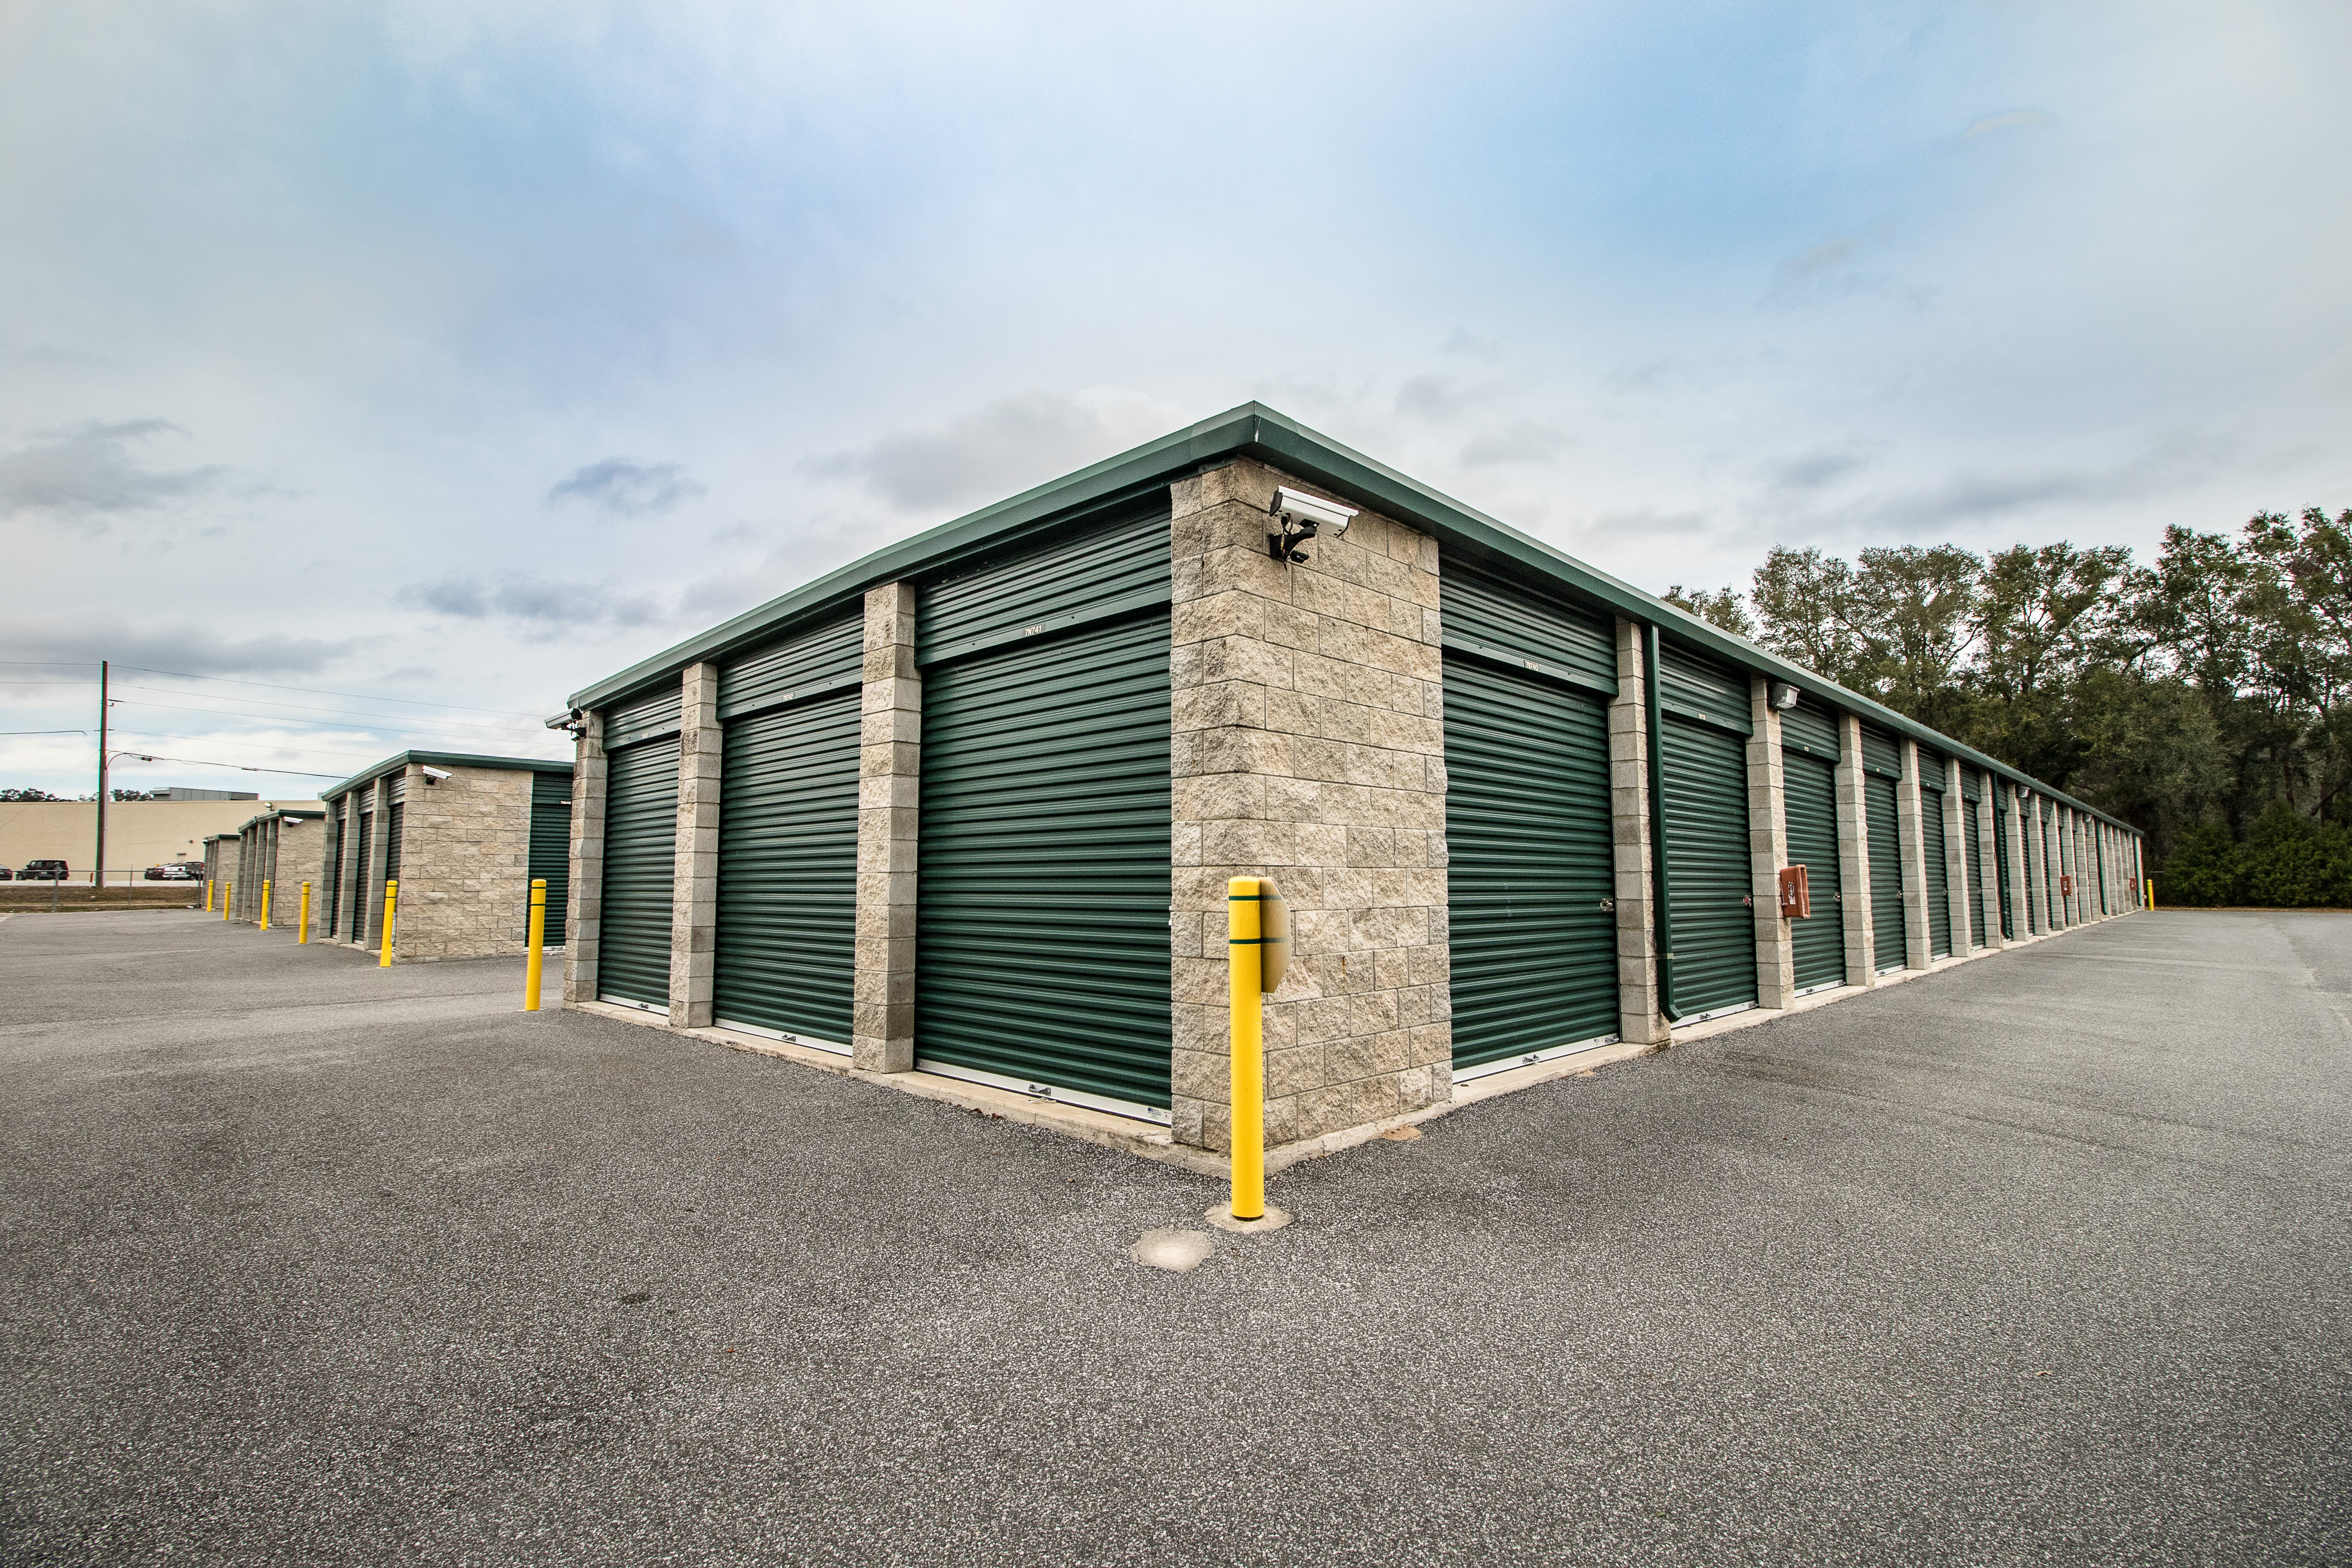 Neighborhood Storage features clean exterior storage units in Belleview, Florida